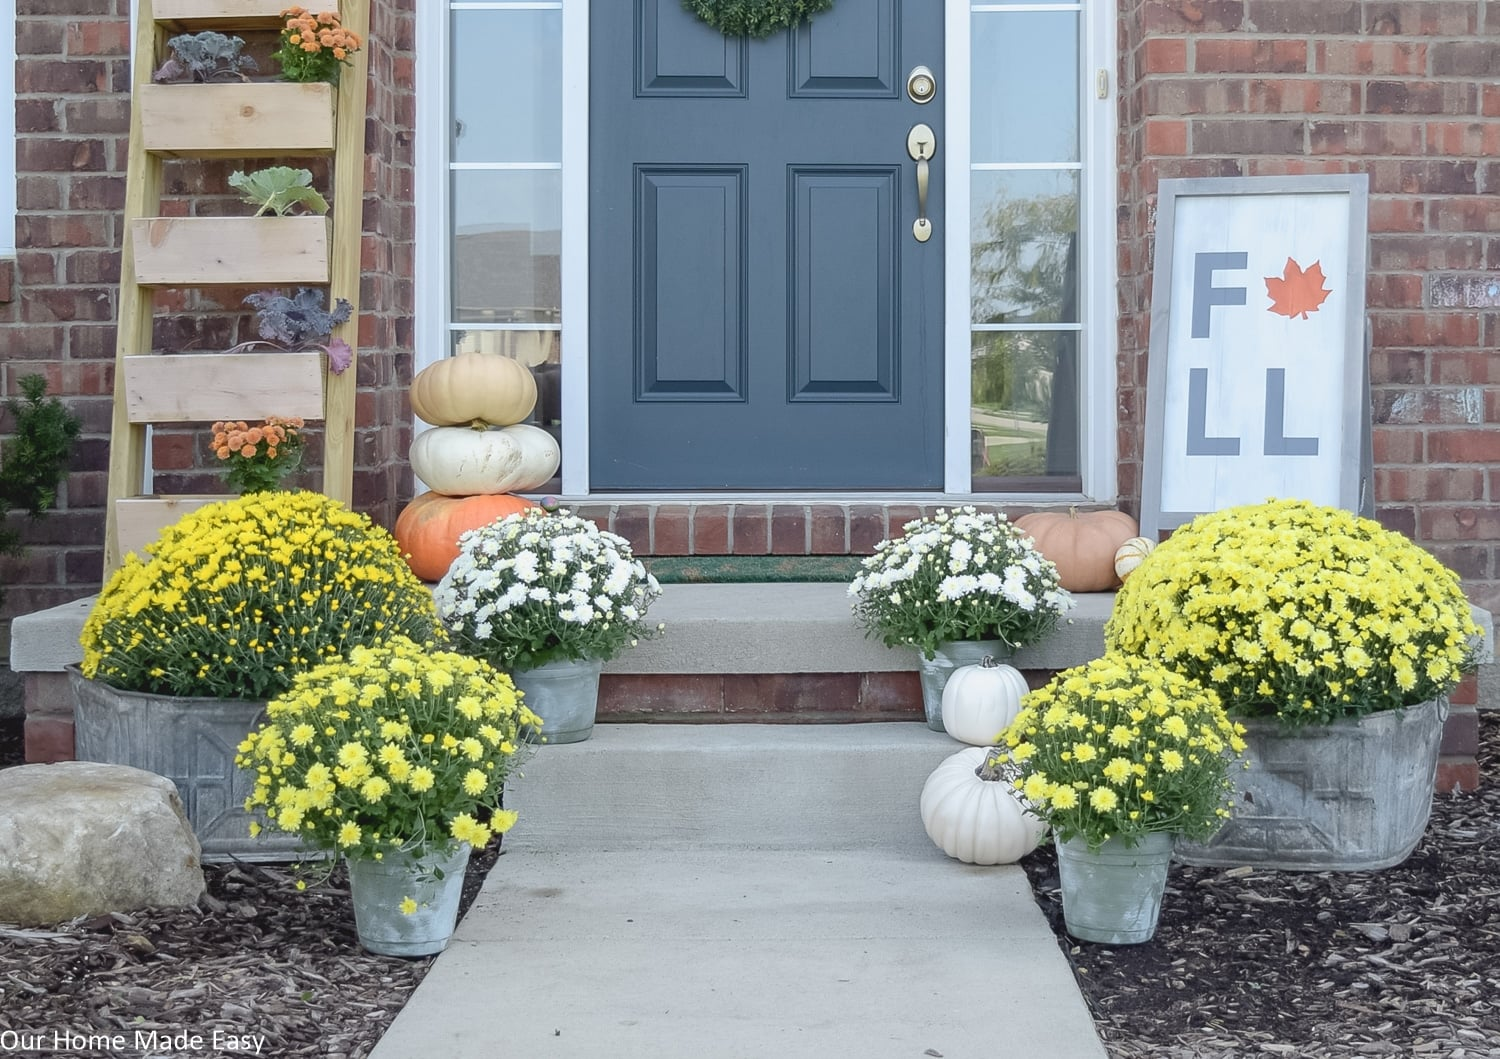 this fall themed front porch is warm and inviting with potted mums and harvest pumpkins